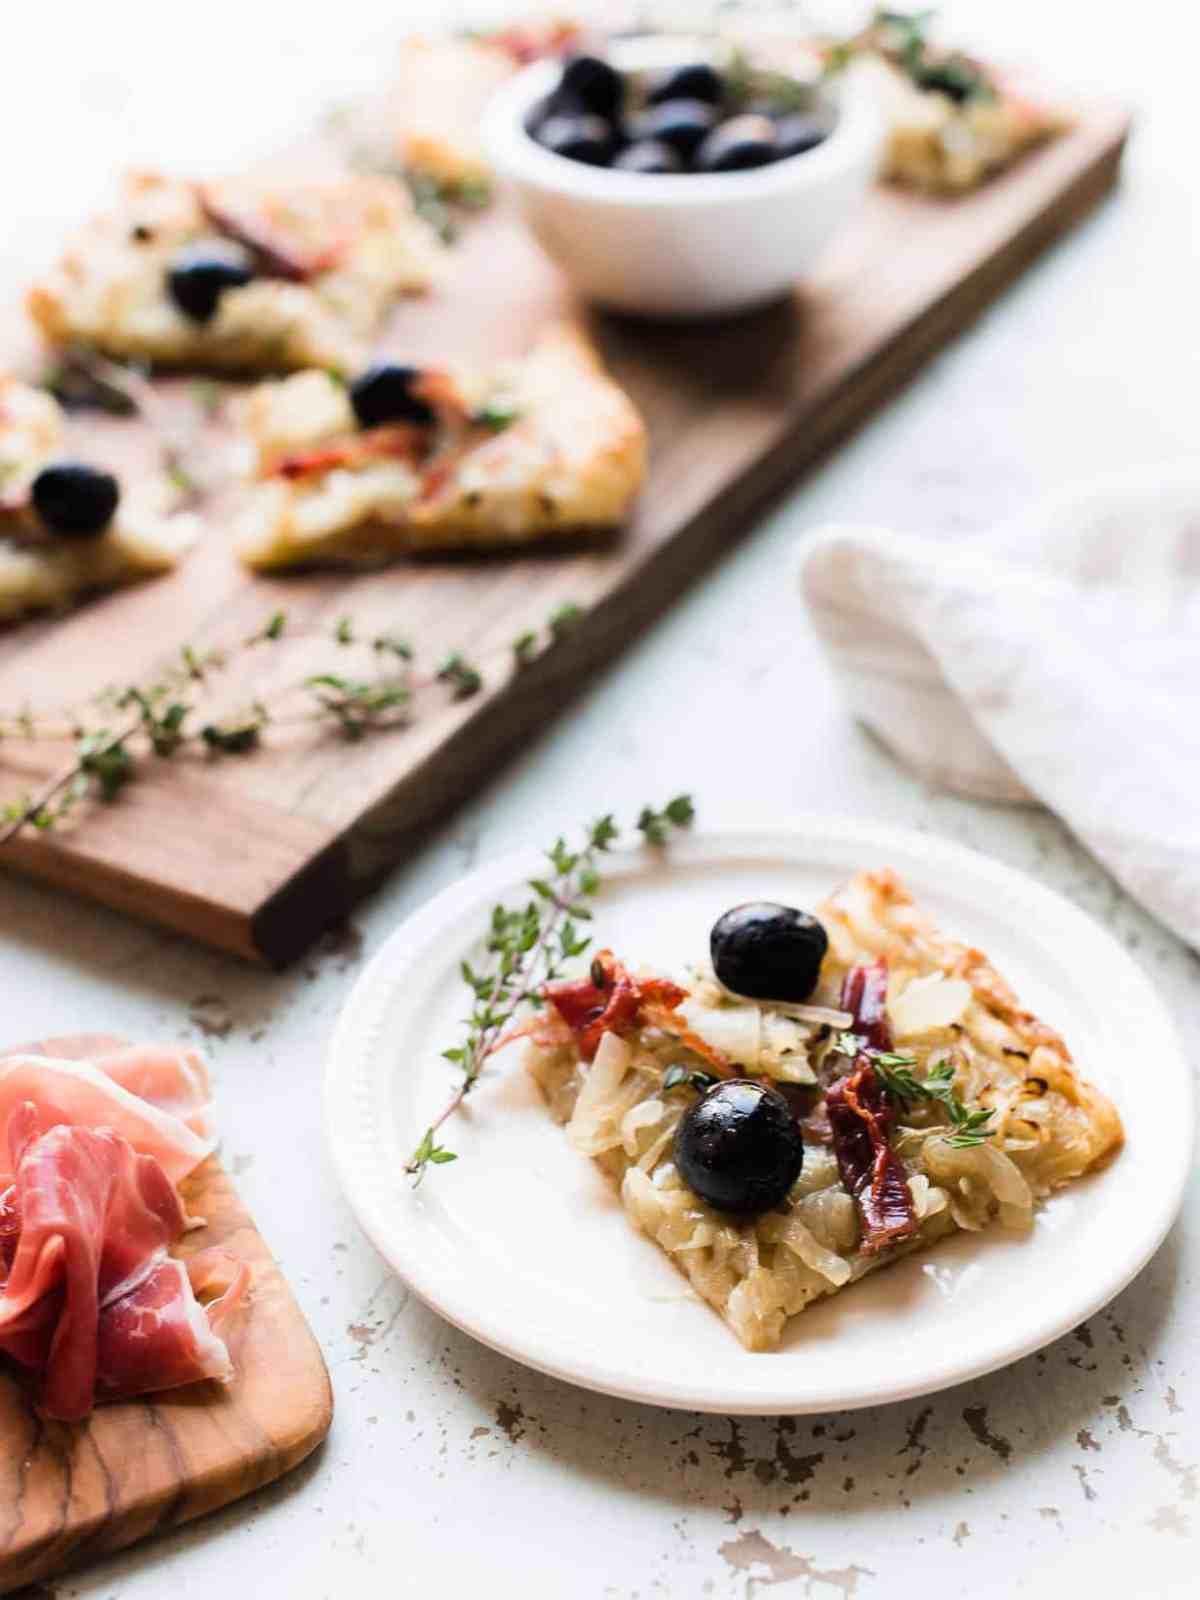 Slice of homemade Pissaladière with Prosciutto on white plate with more slices on a wooden serving board in the background.